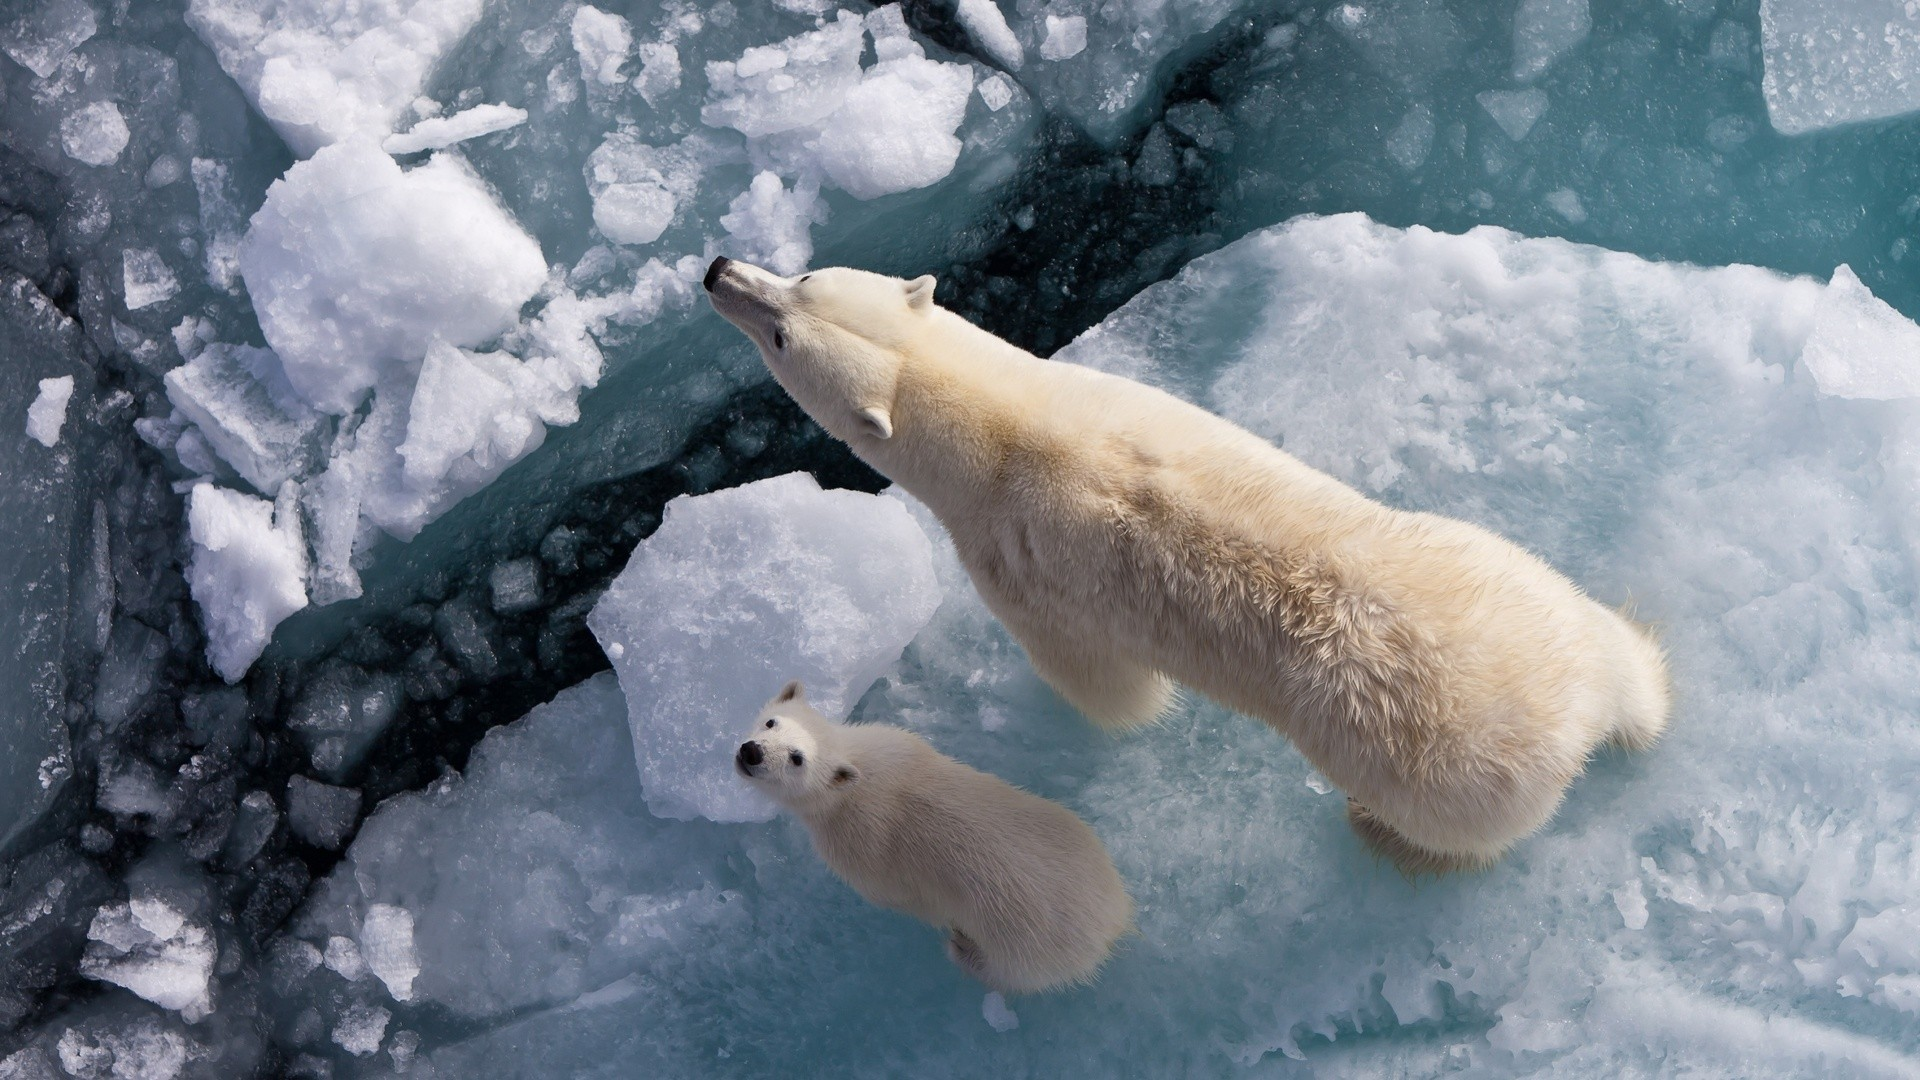 ice Animals Polar Bears HD Wallpaper